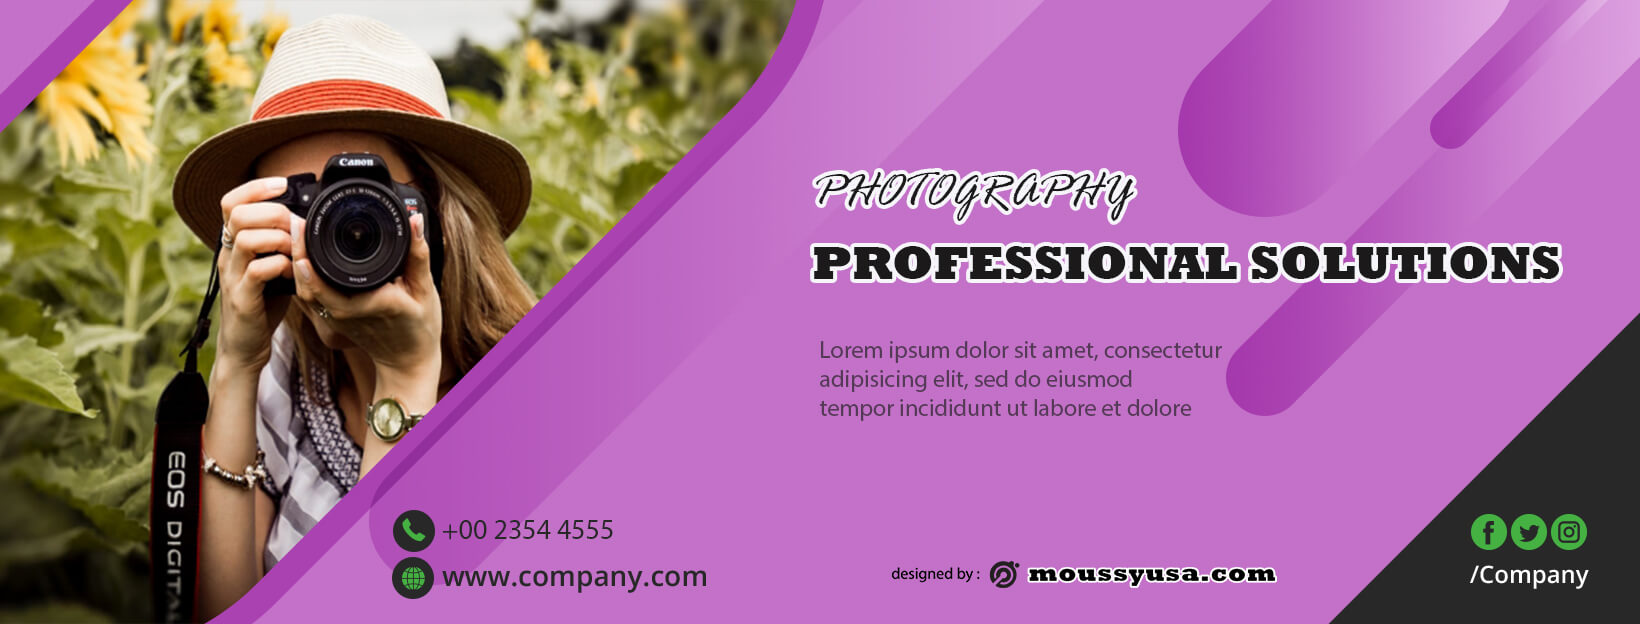 Photography Banner Design Template